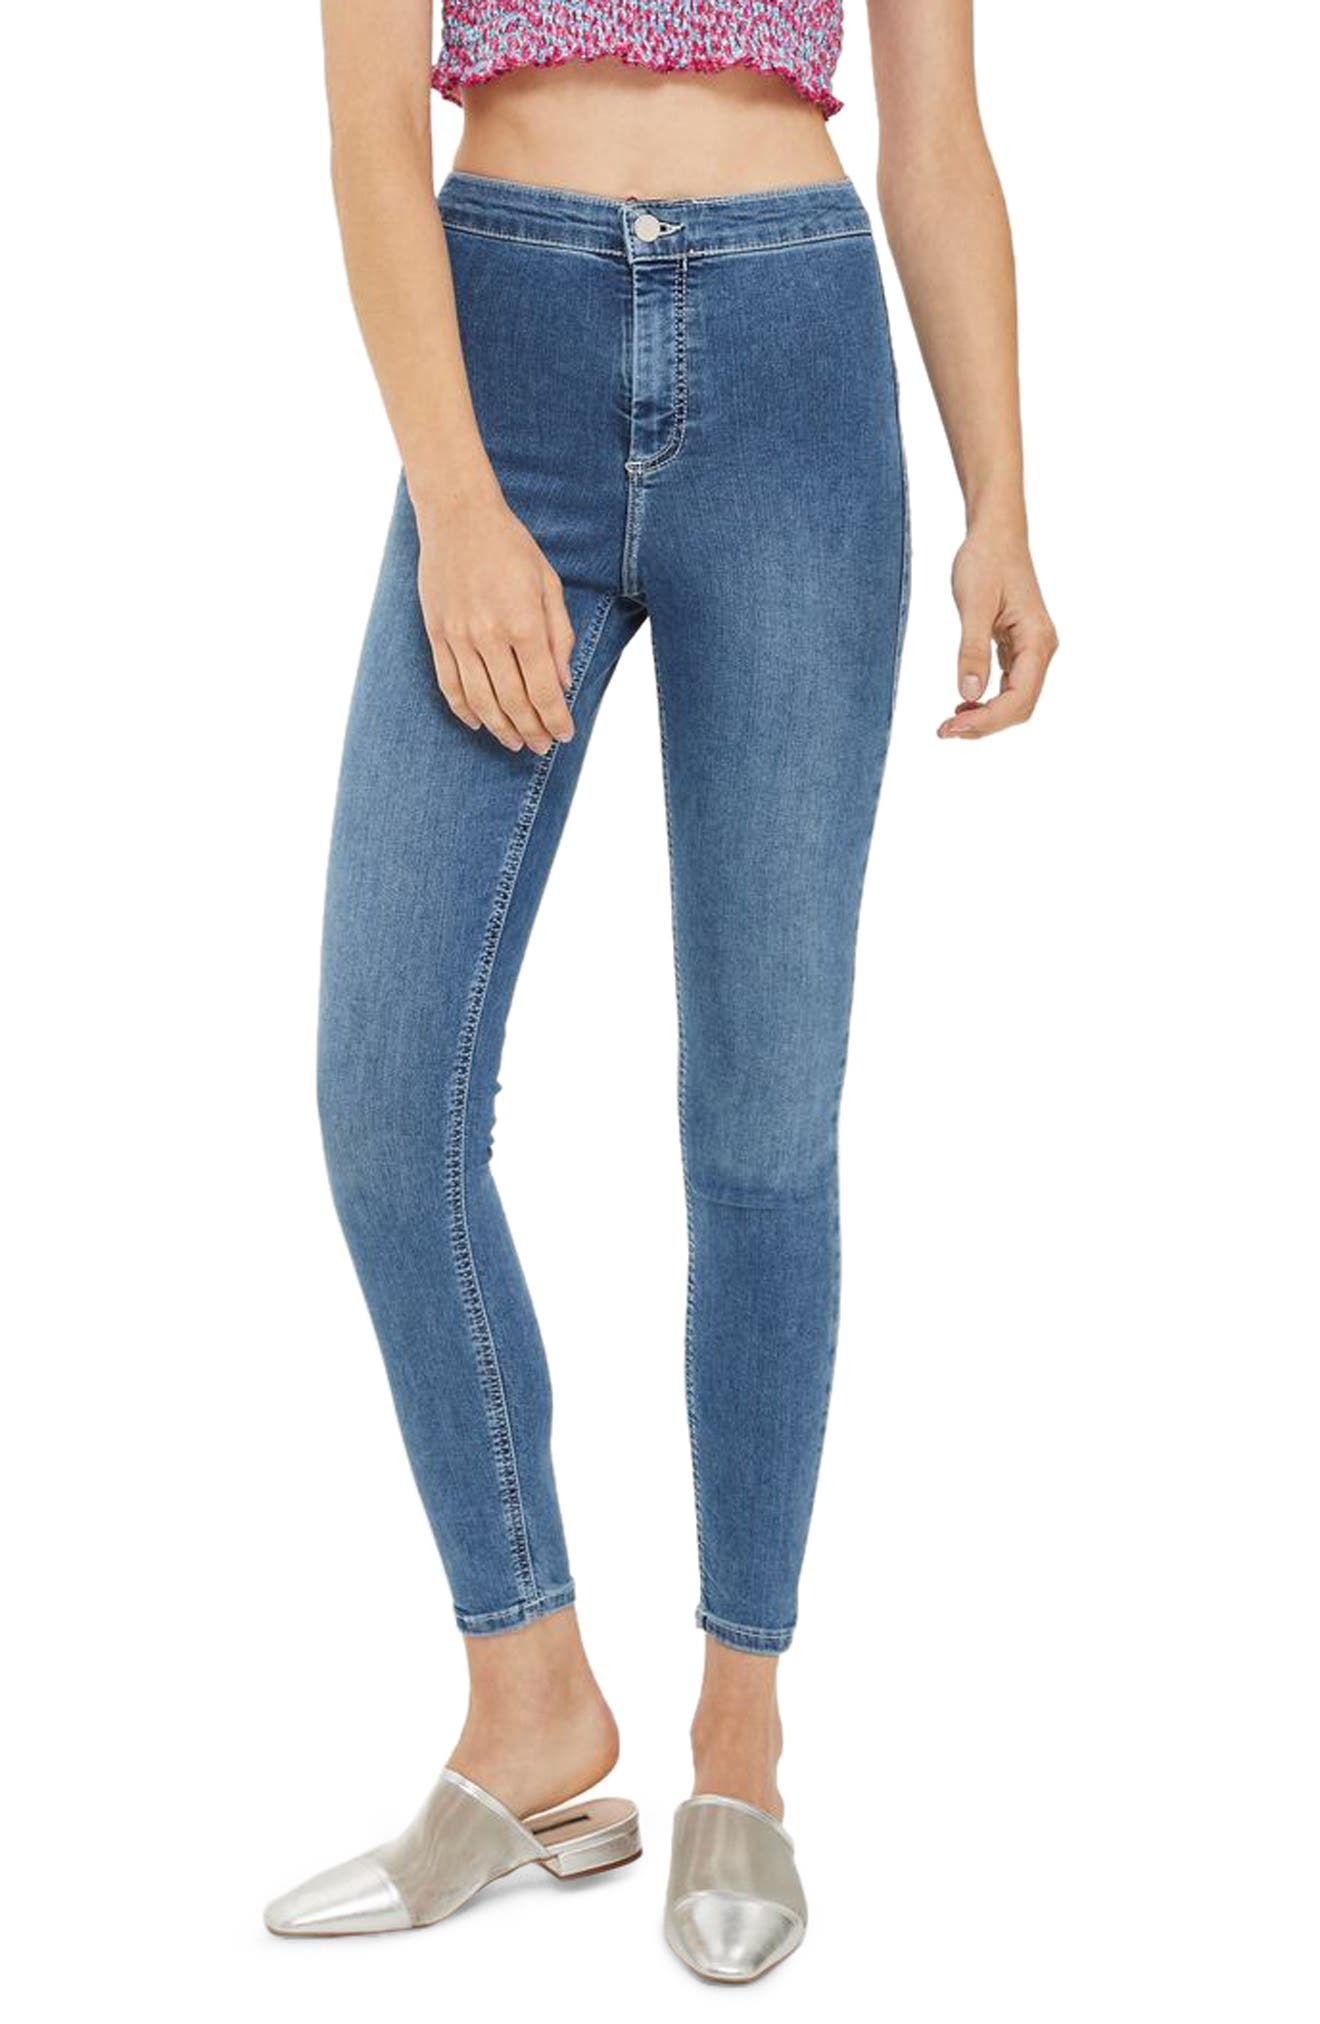 Alternate Image 1 Selected - Topshop Joni Contrast Stitch High Rise Skinny Jeans